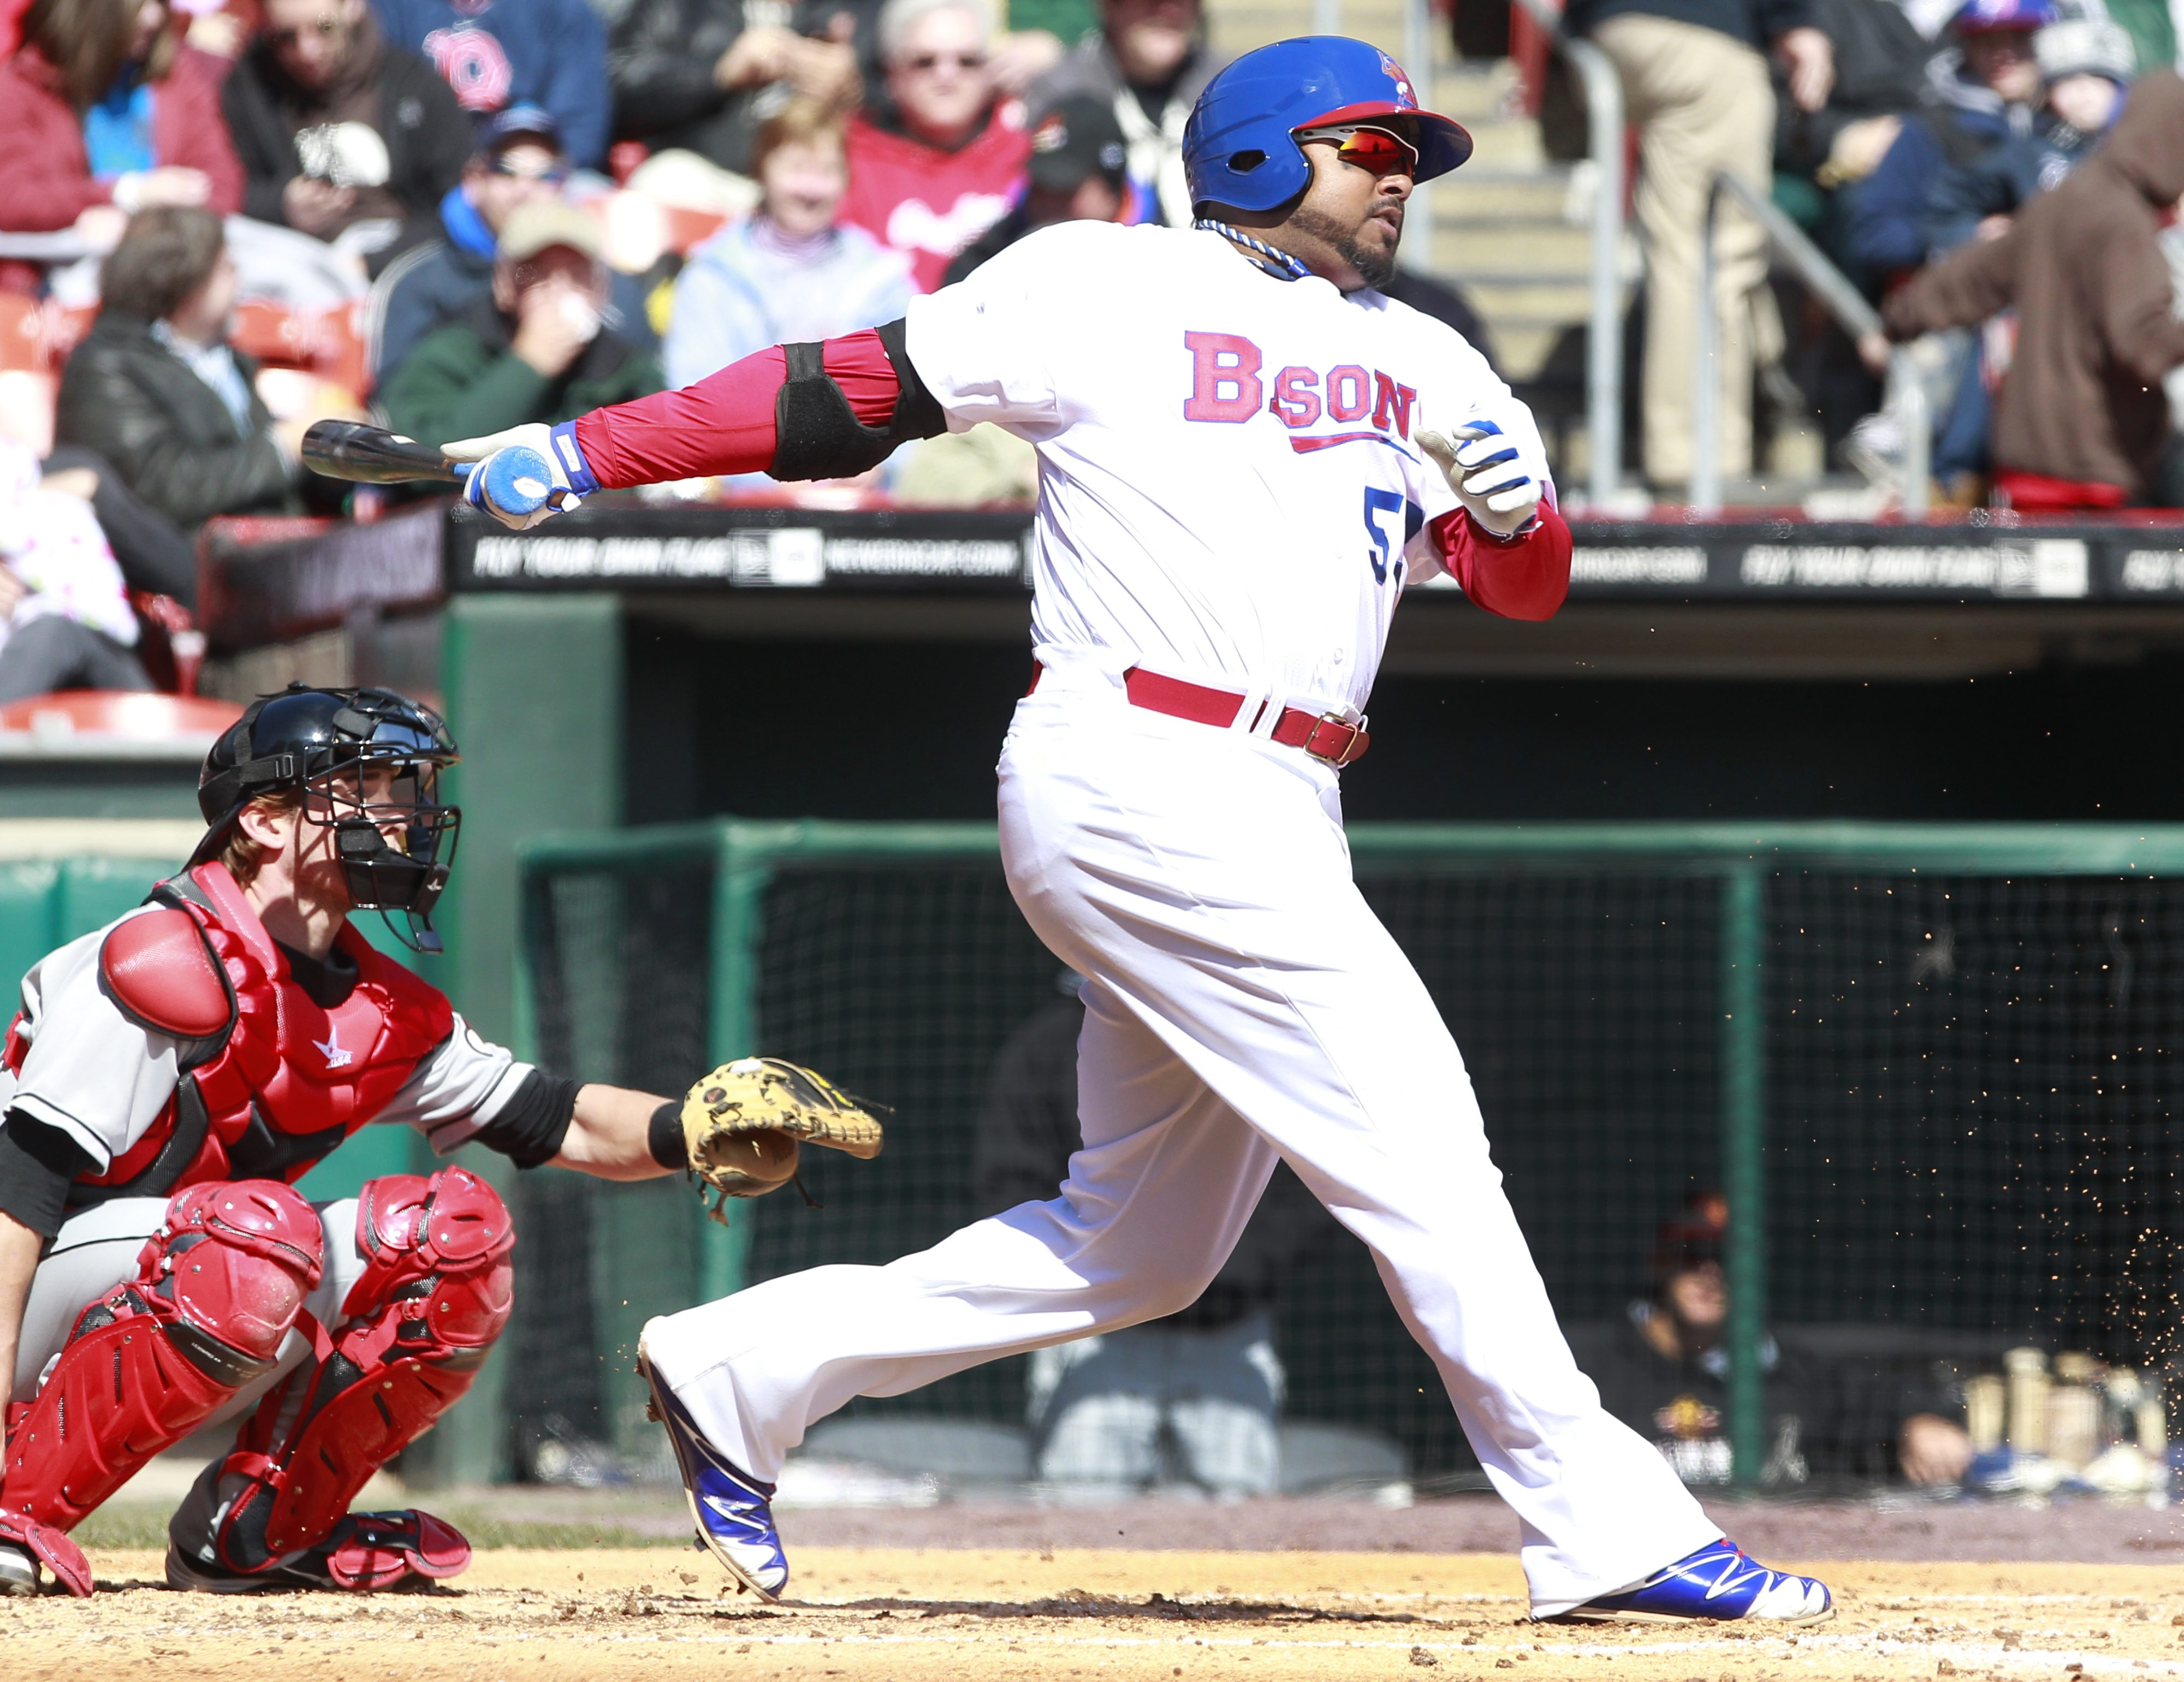 The Bisons' Luis Jimenez follows through on a home run in Thursday's Opening Day win over Rochester.